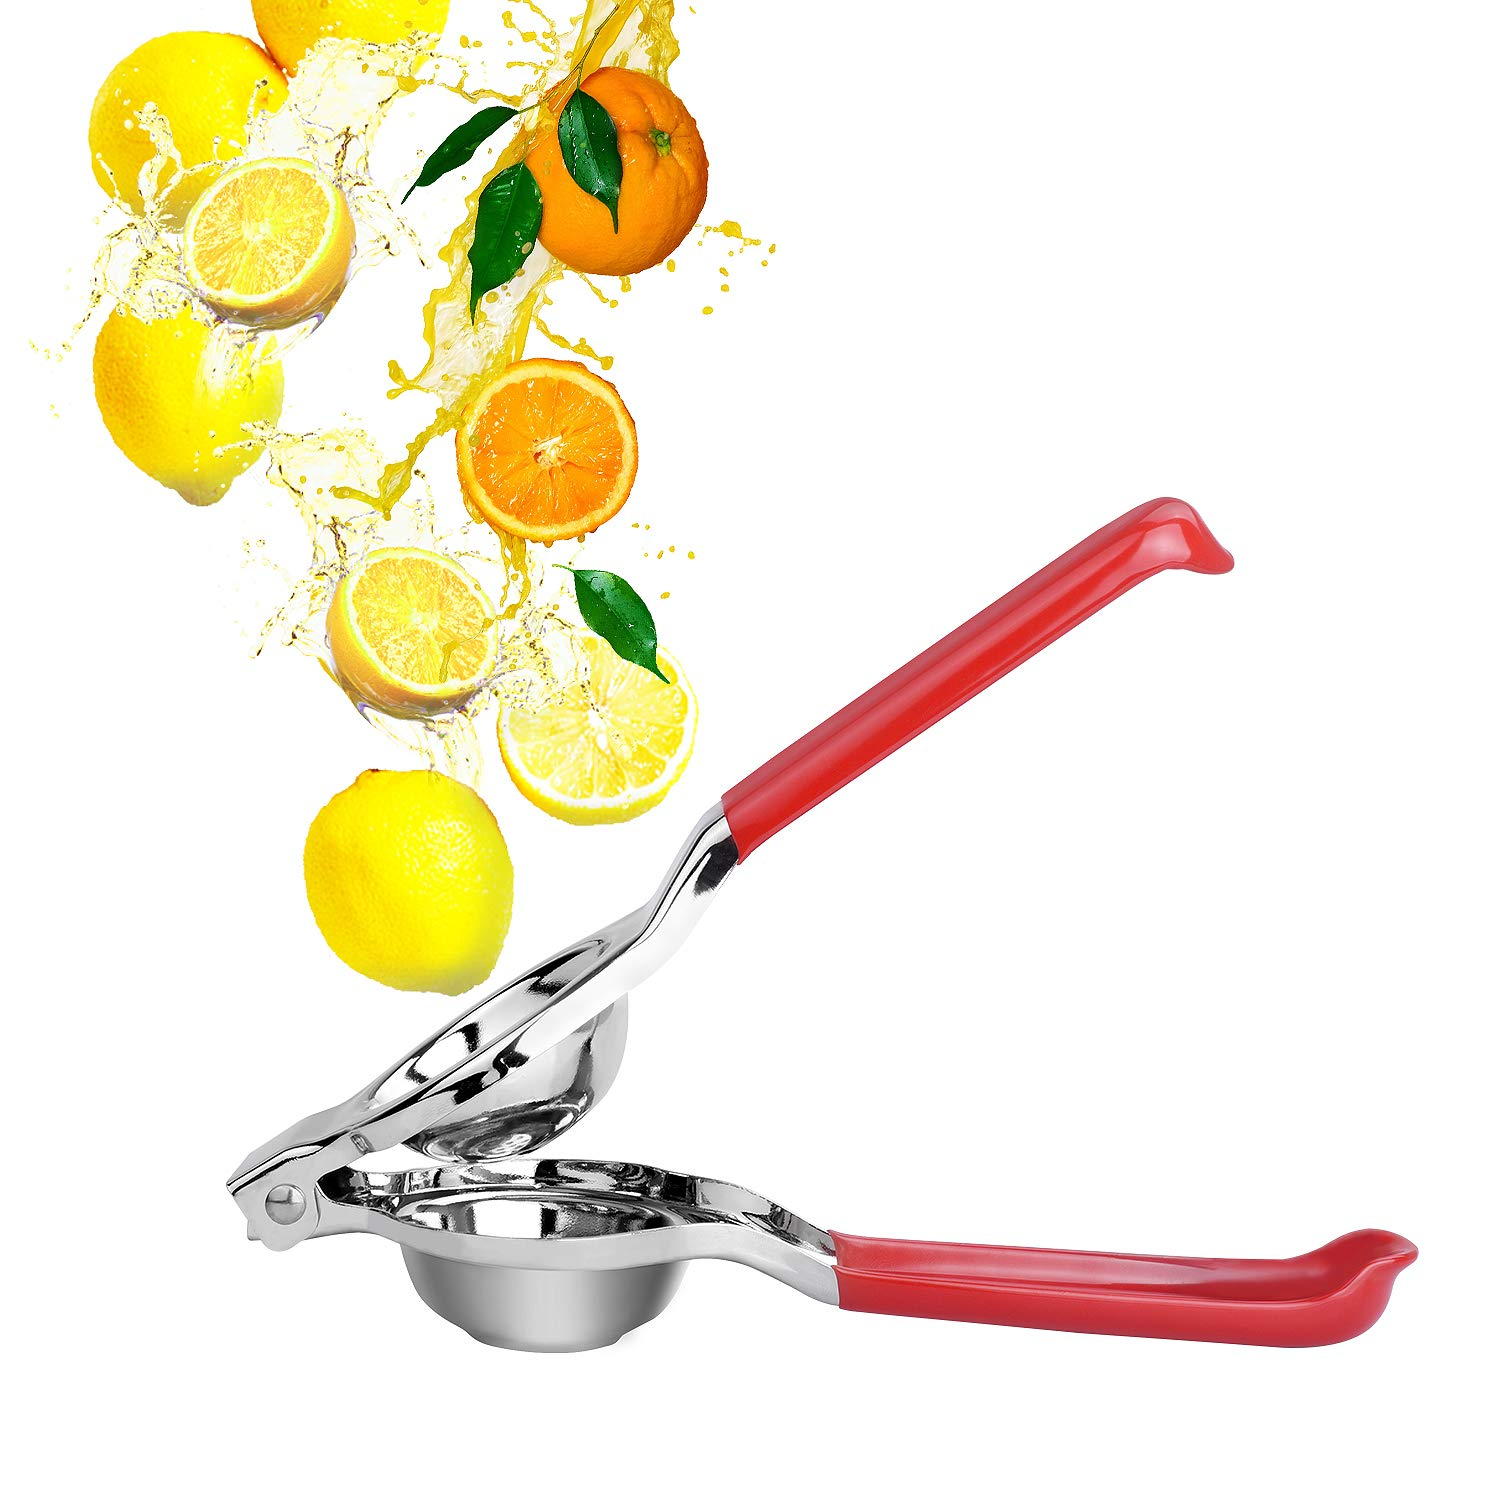 Lemon Lime Squeezer,Premium Stainless Steel Manual Citrus Press Juicer,Heavy Duty Lime Squeezer,Large Bowl Single Press Lemon Squeezer with 12 Holes for More Juice,PVC Handle Easy To Use